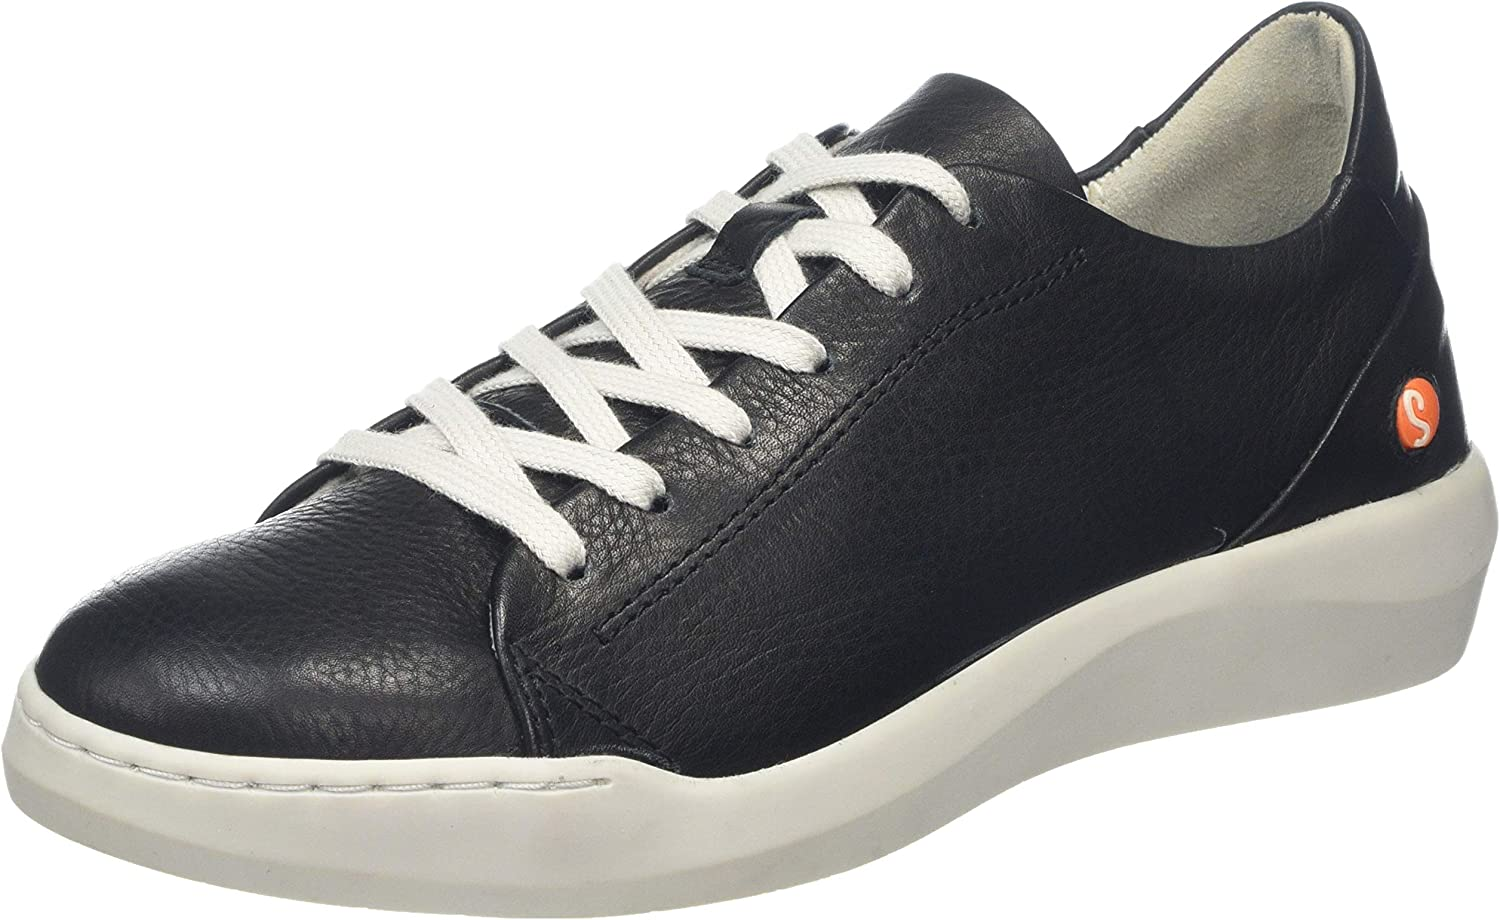 Softinos Women's Max 48% OFF Albuquerque Mall Sneakers Low-Top